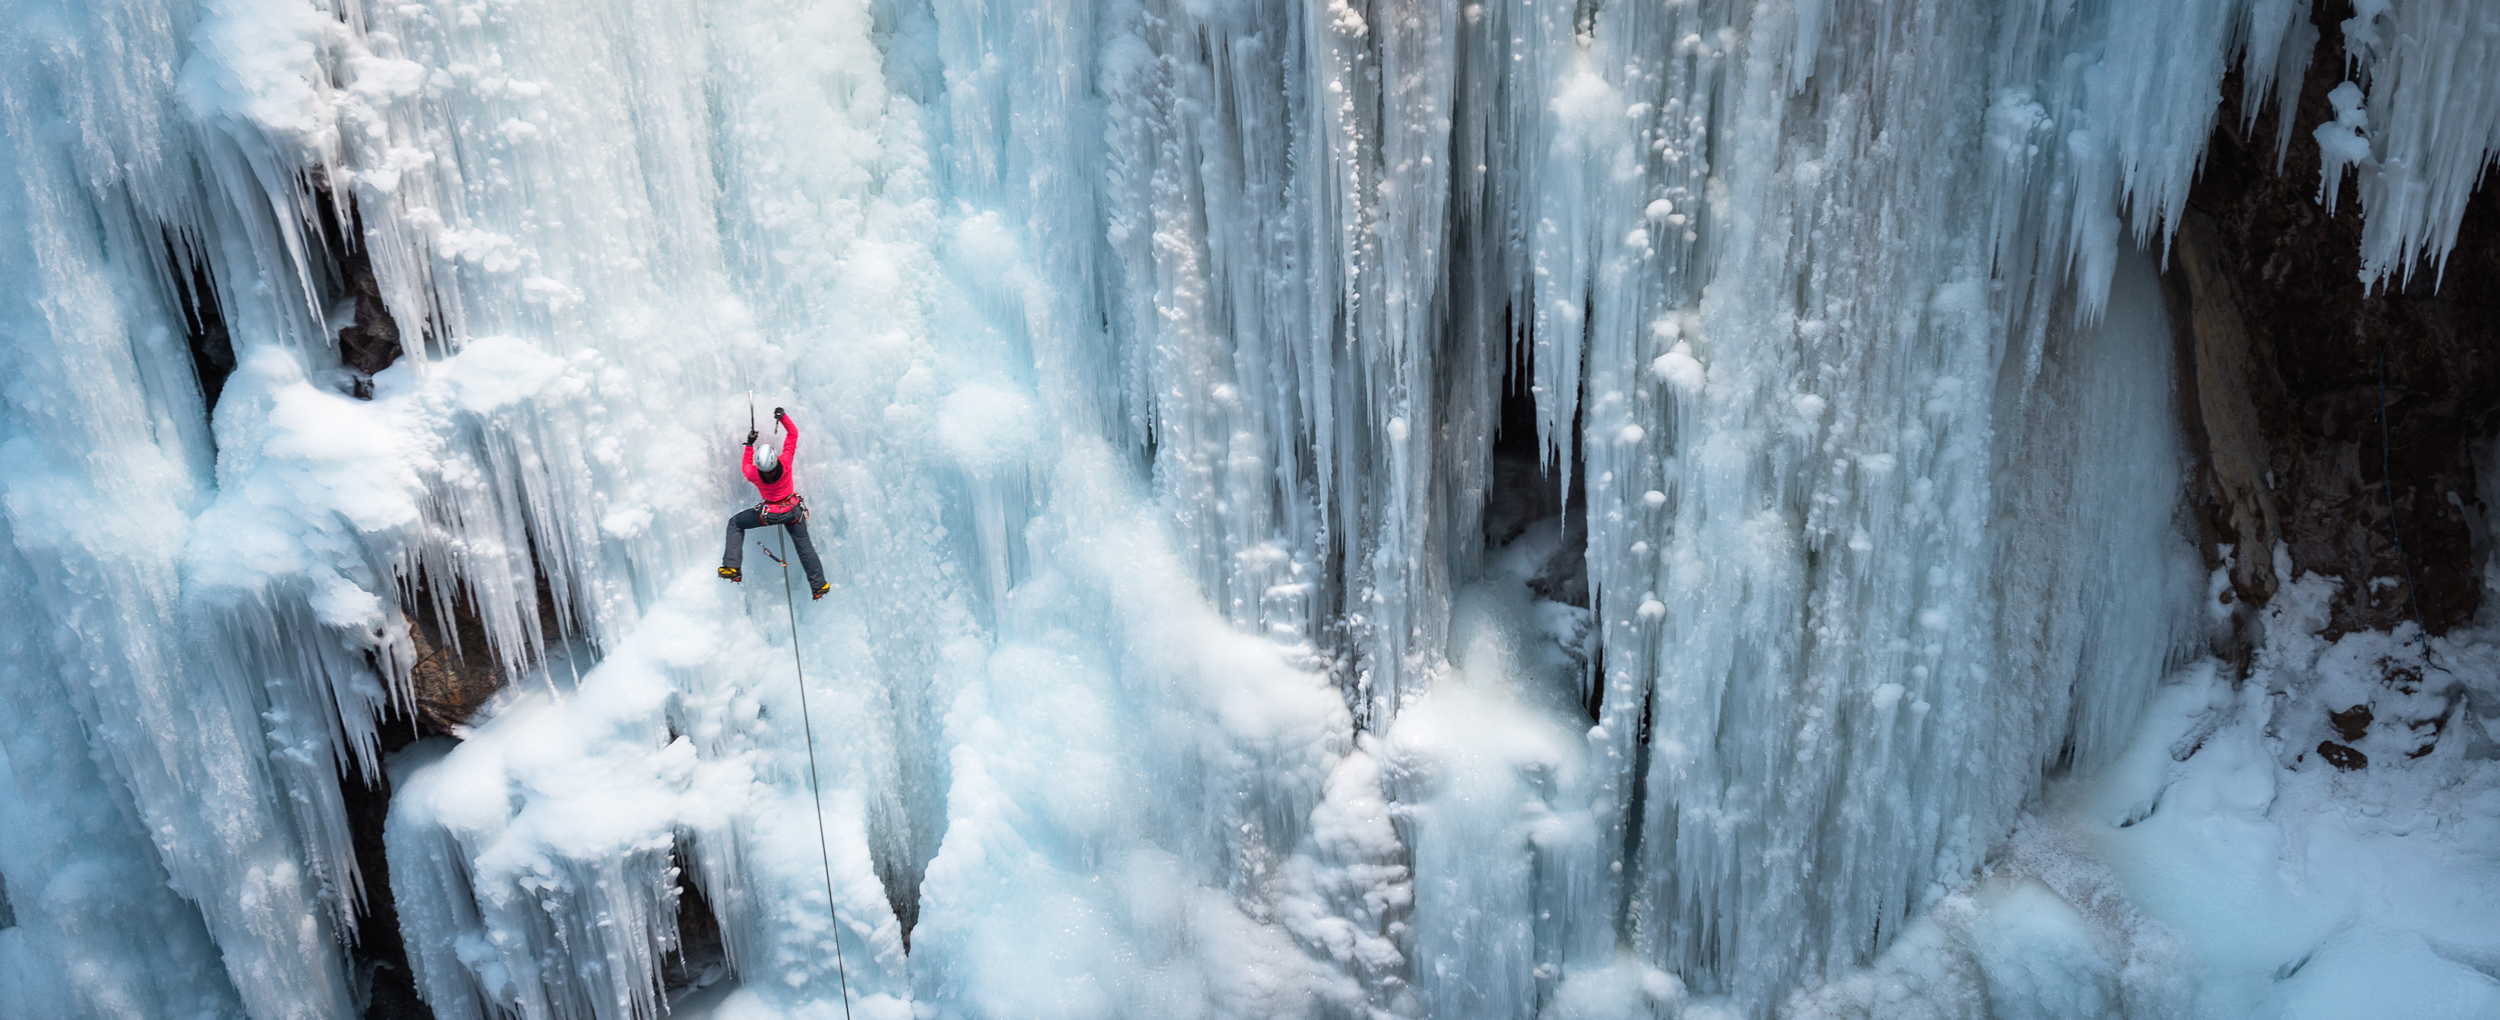 2500x1020 > Ice Climbing Wallpapers